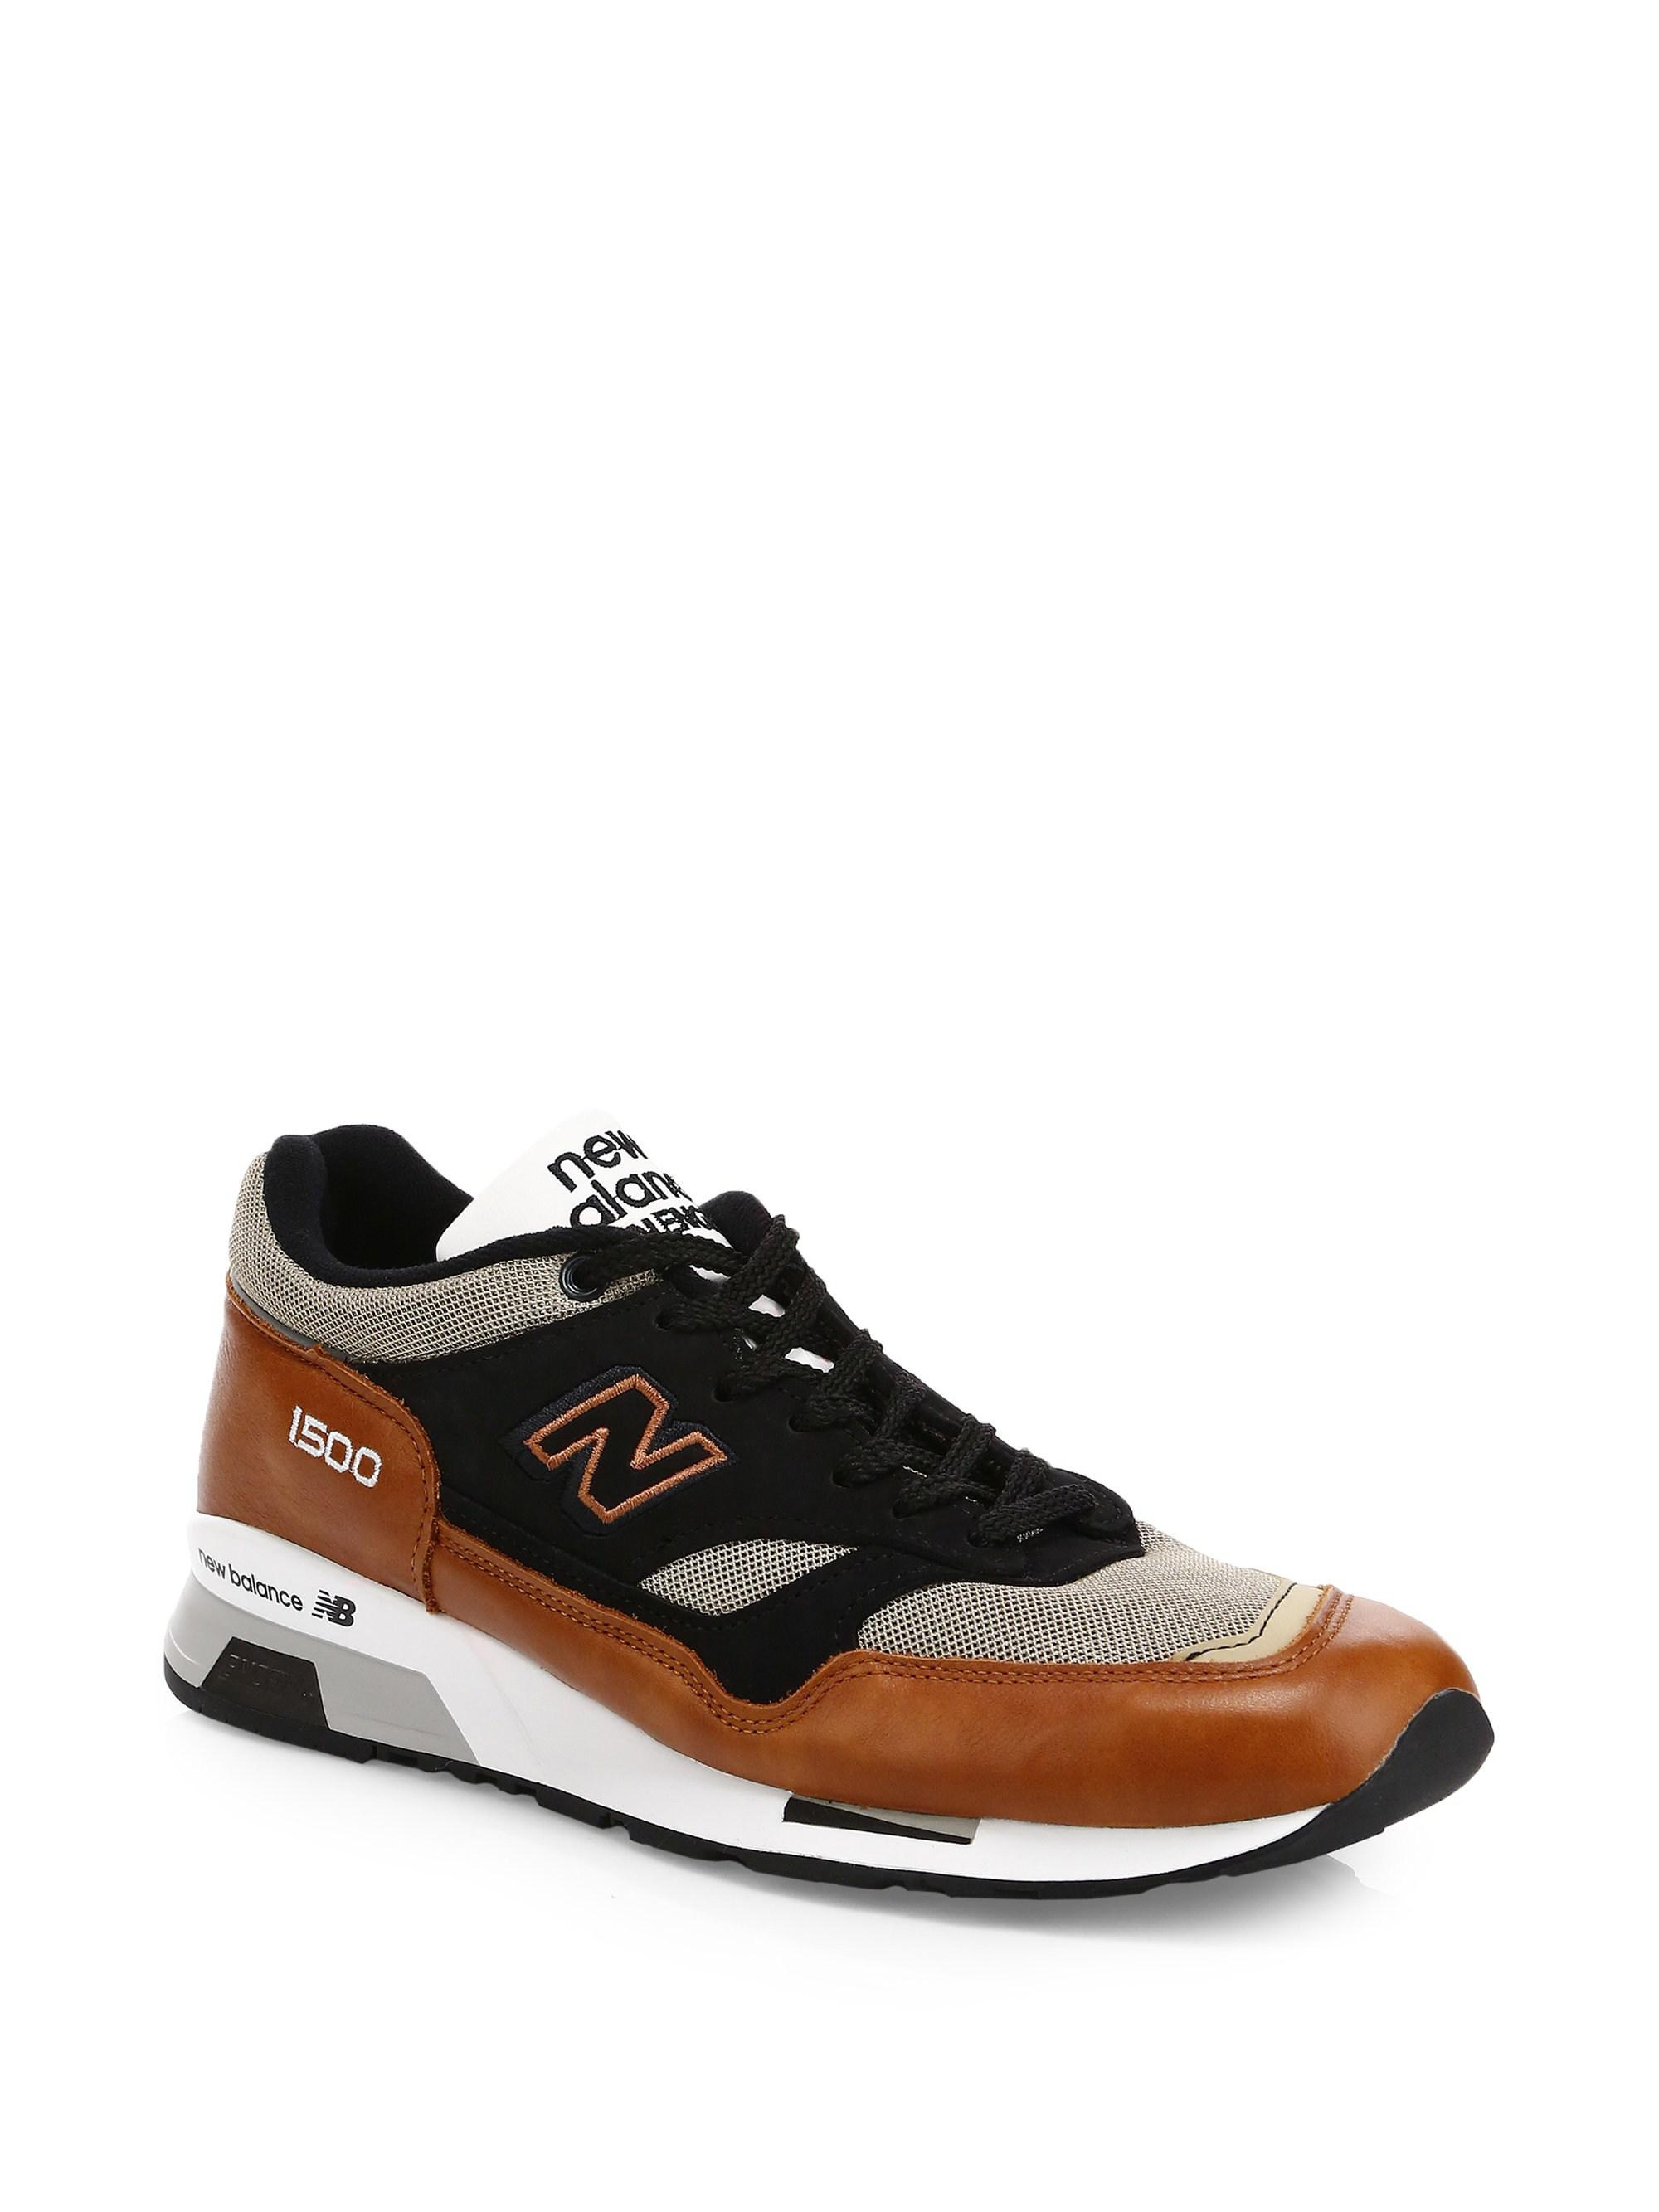 1500 Made In Uk Leather Sneakers